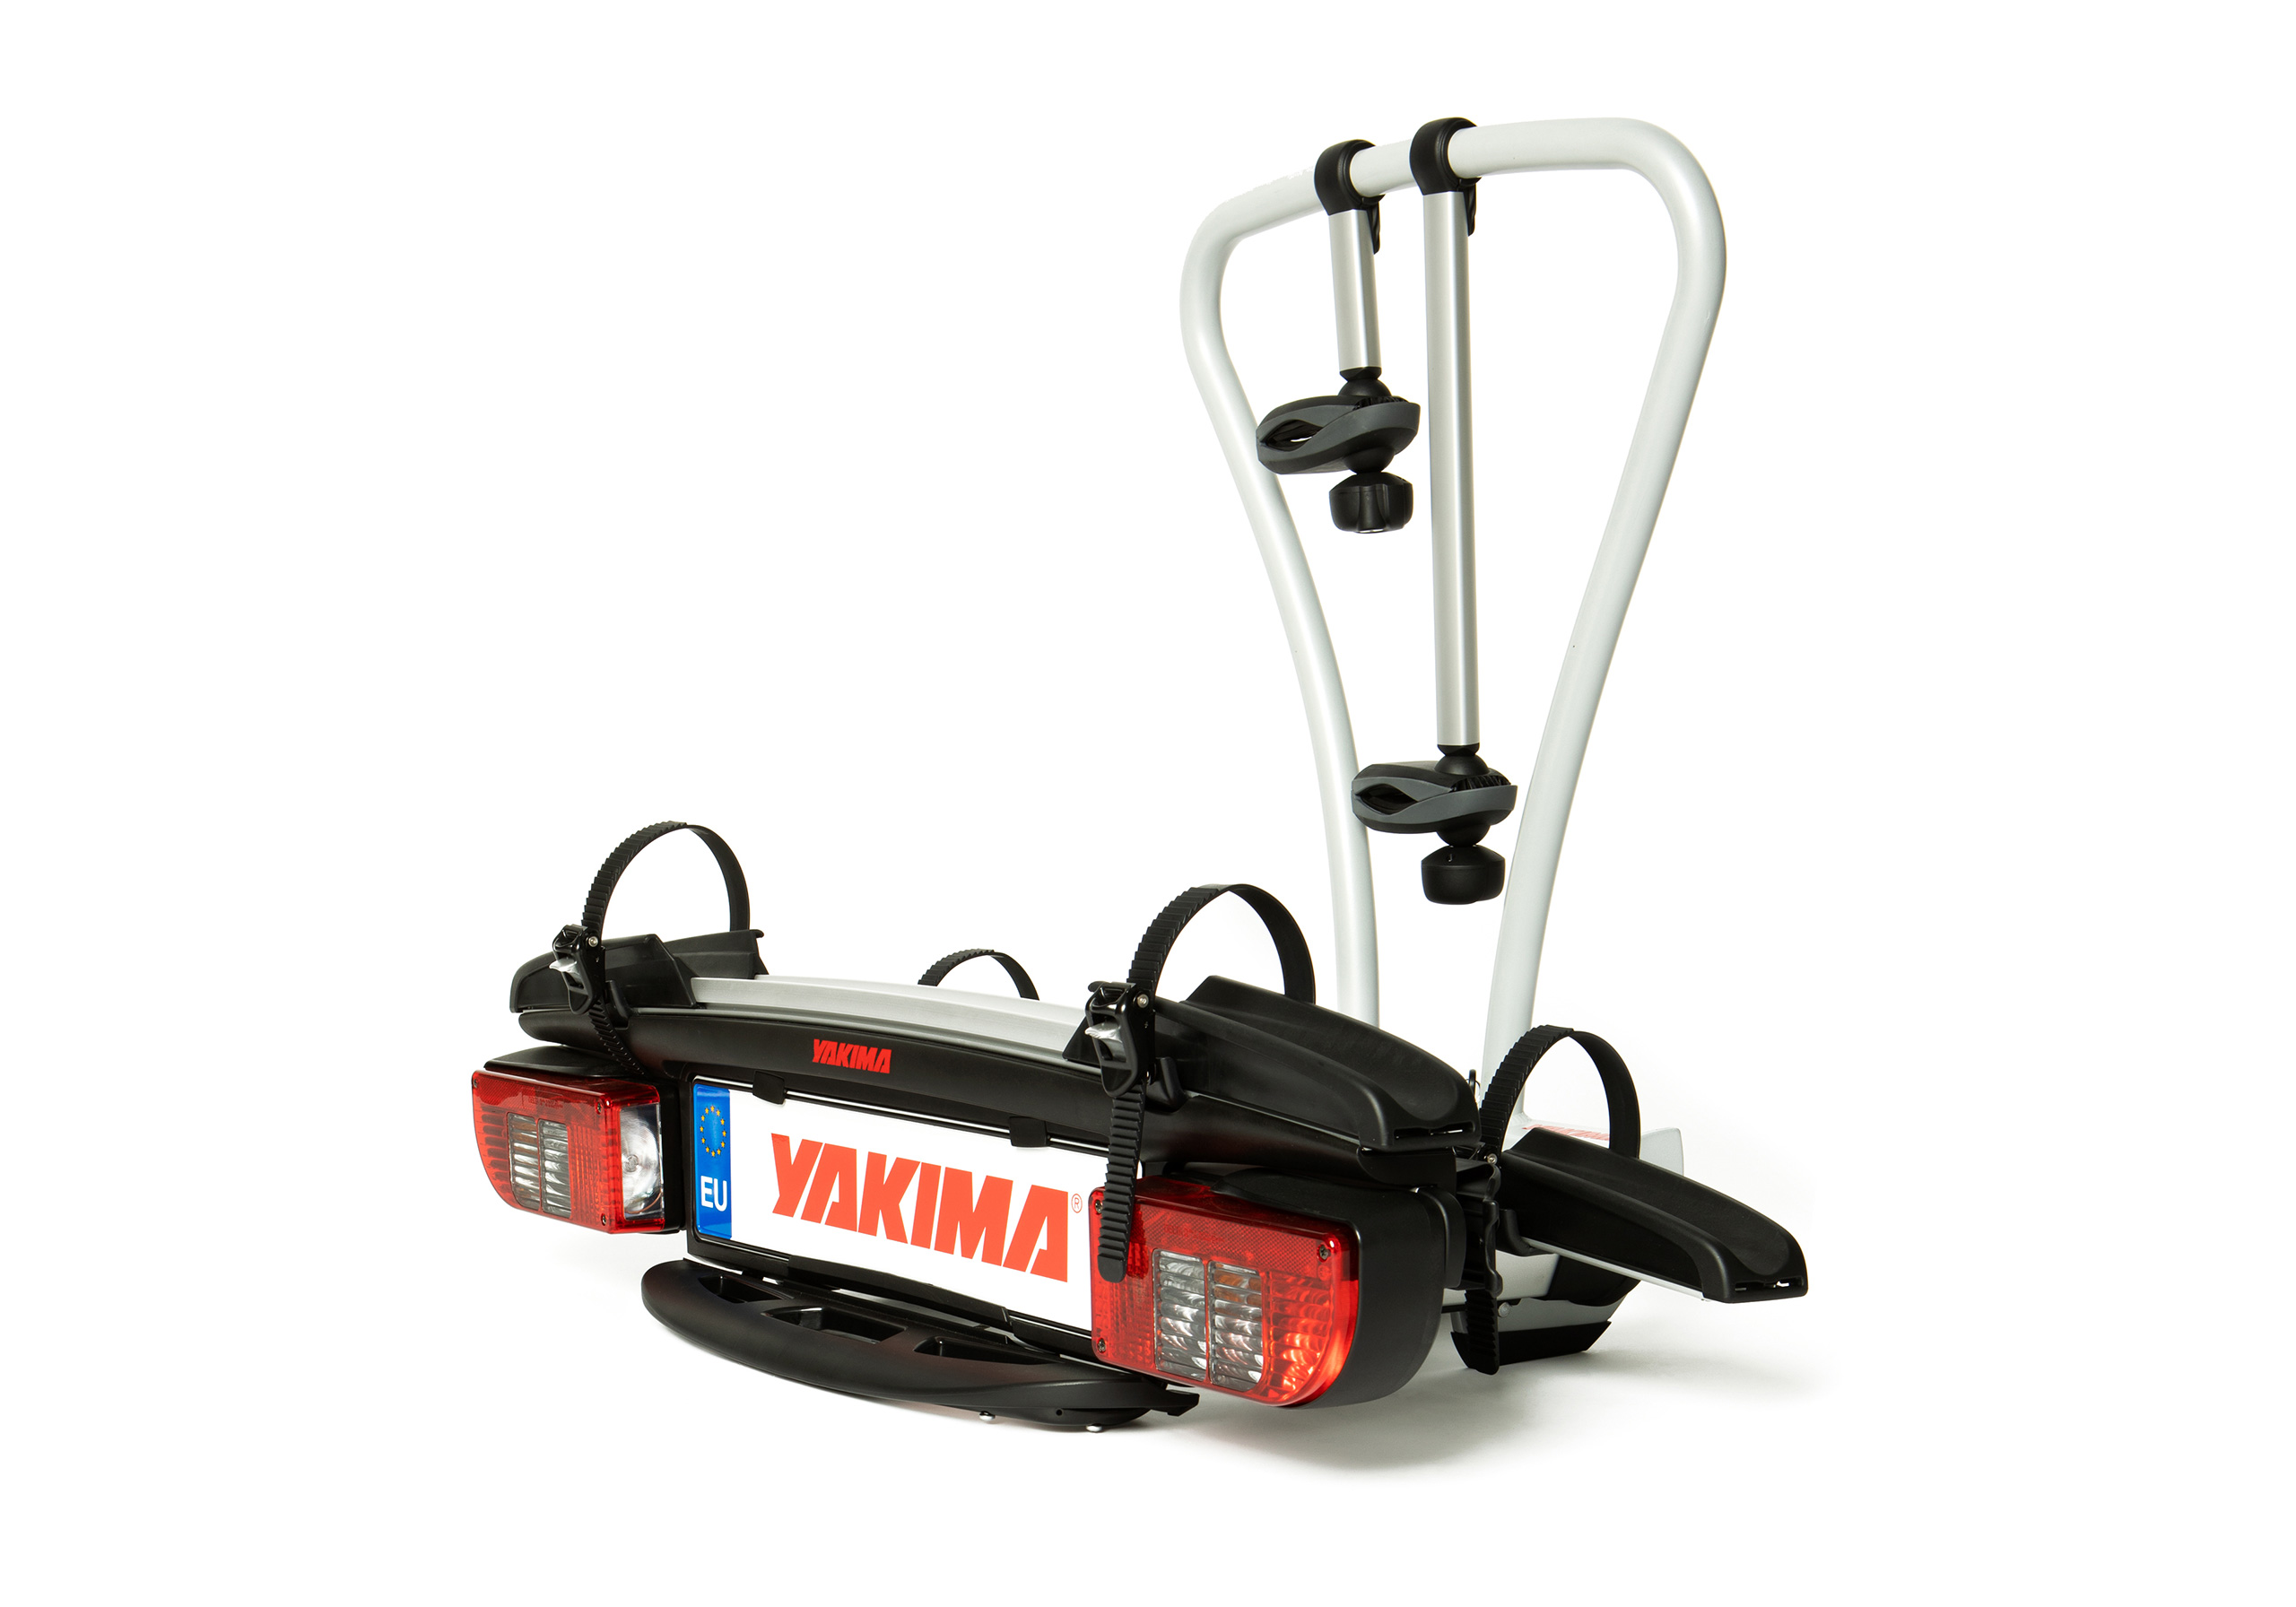 :Yakima JustClick 2 bike tow bar carrier no. 8002486